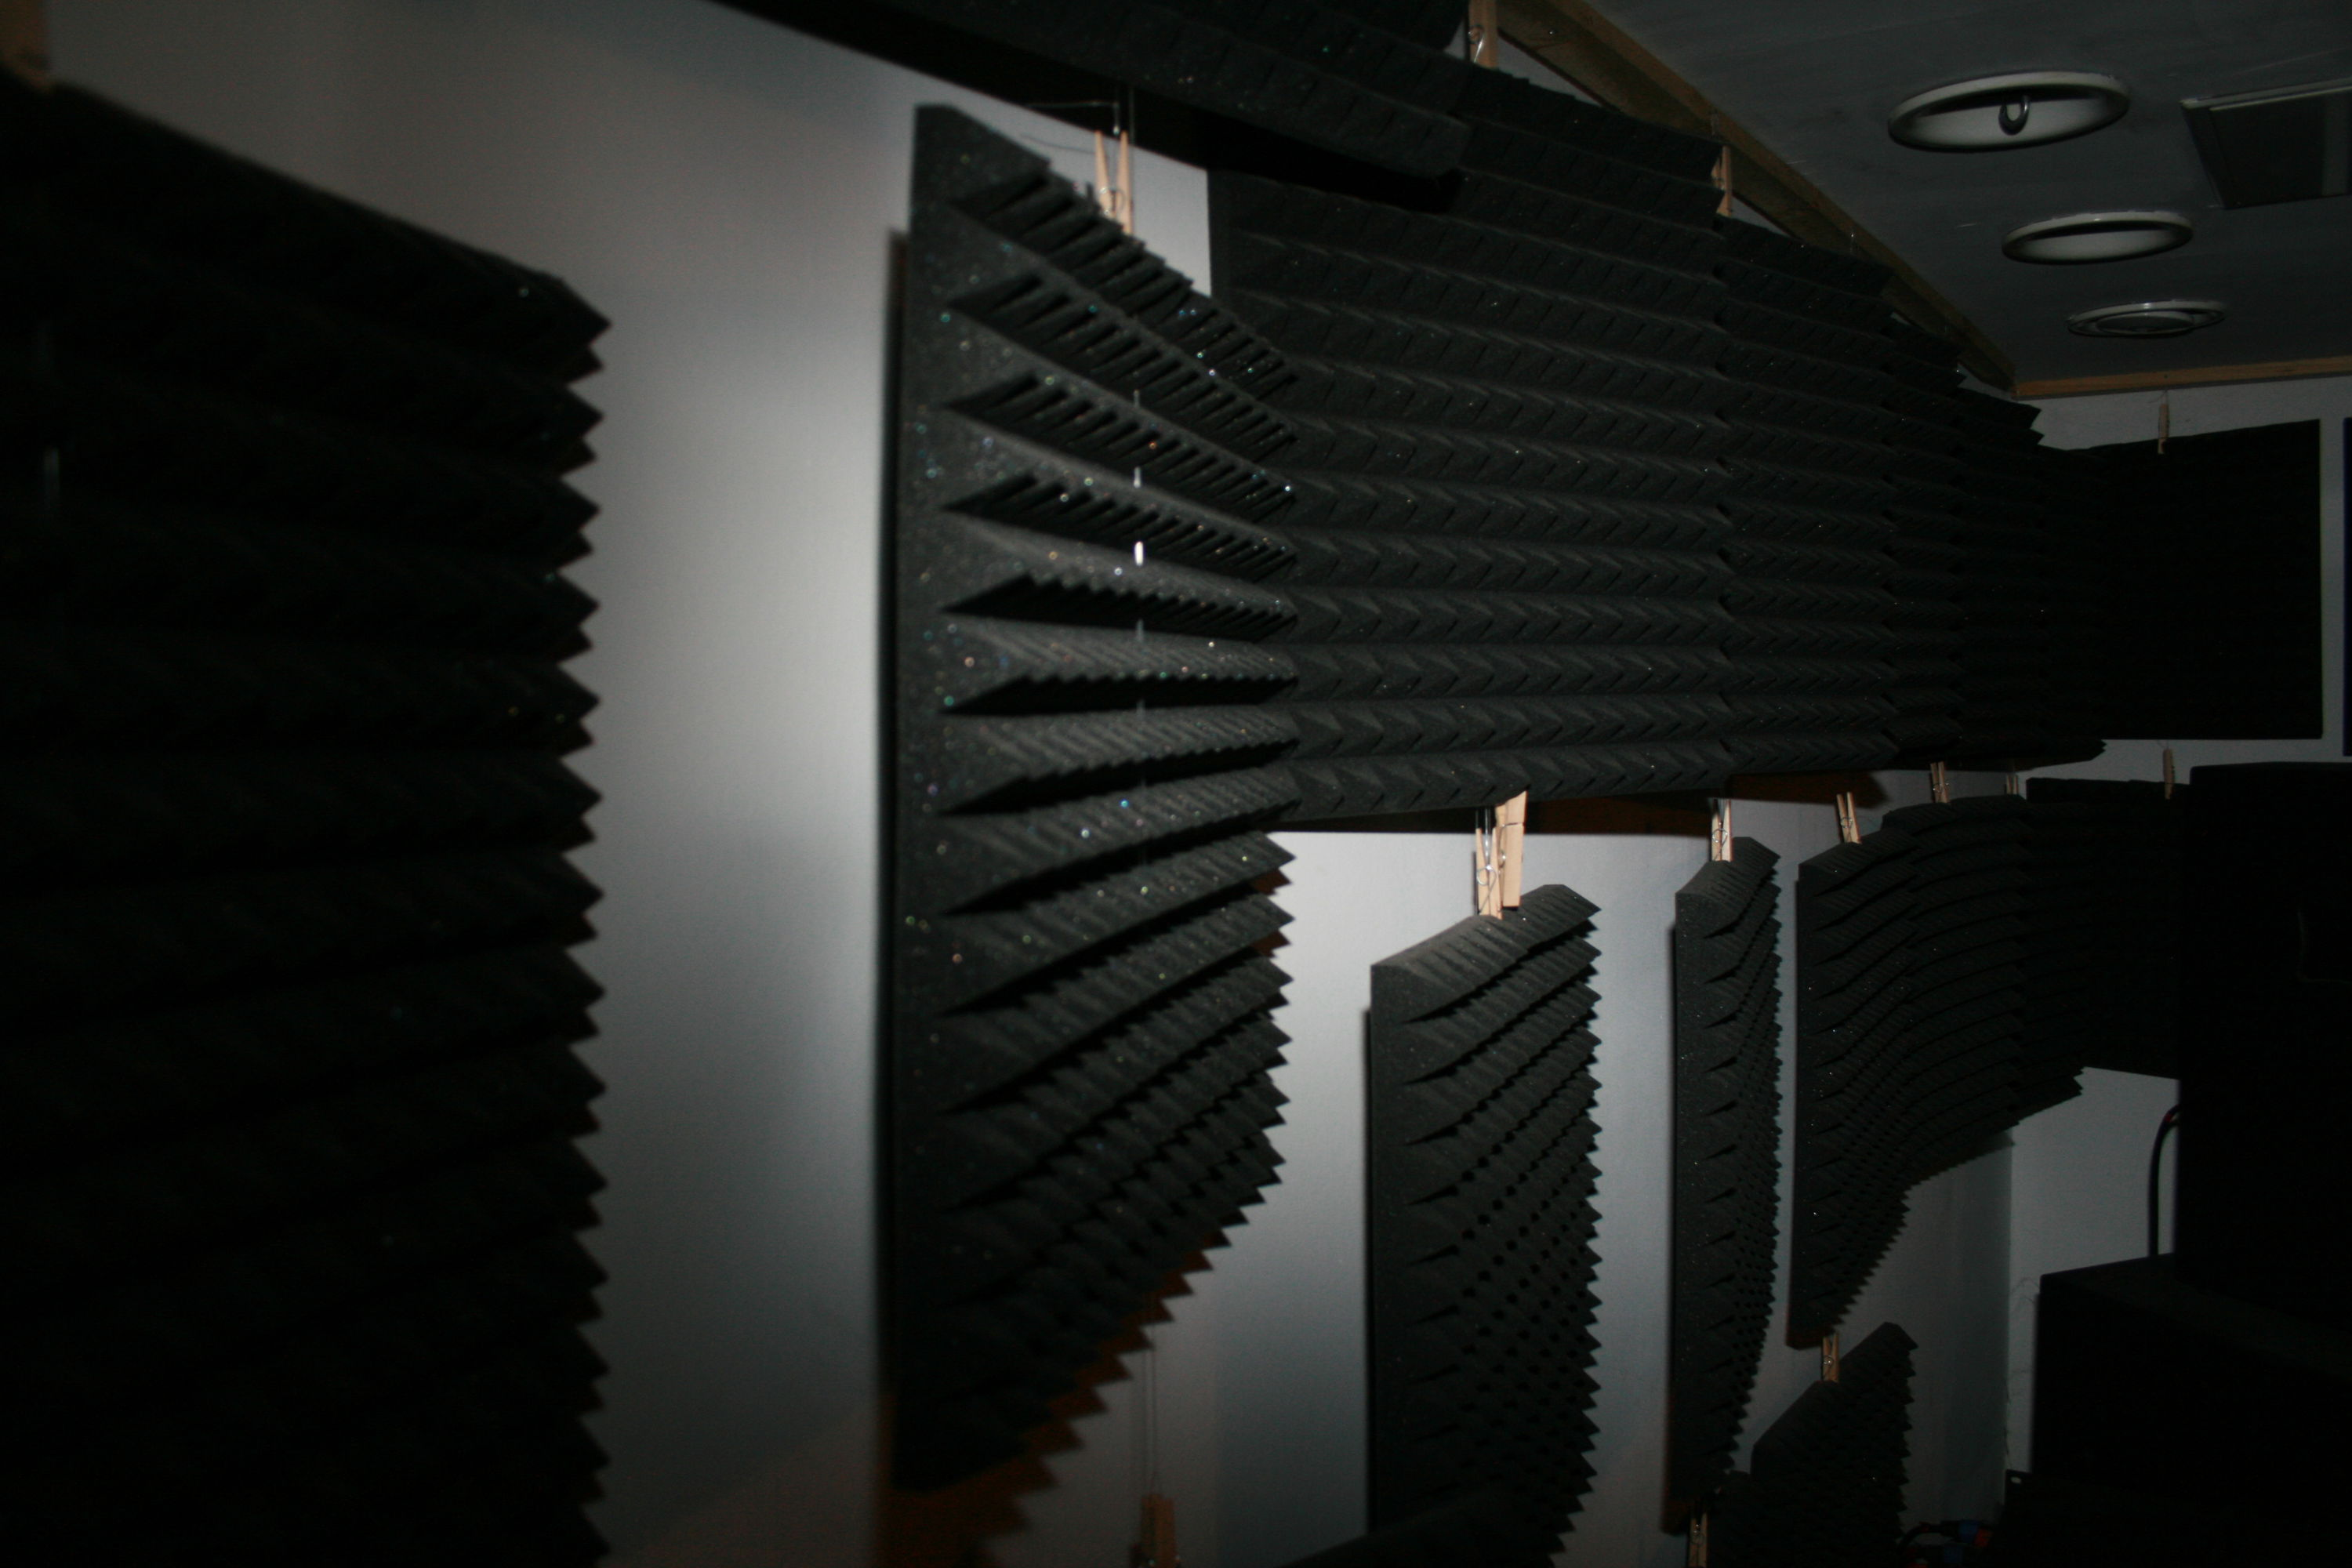 acoustic foam mats along the wall, hanging